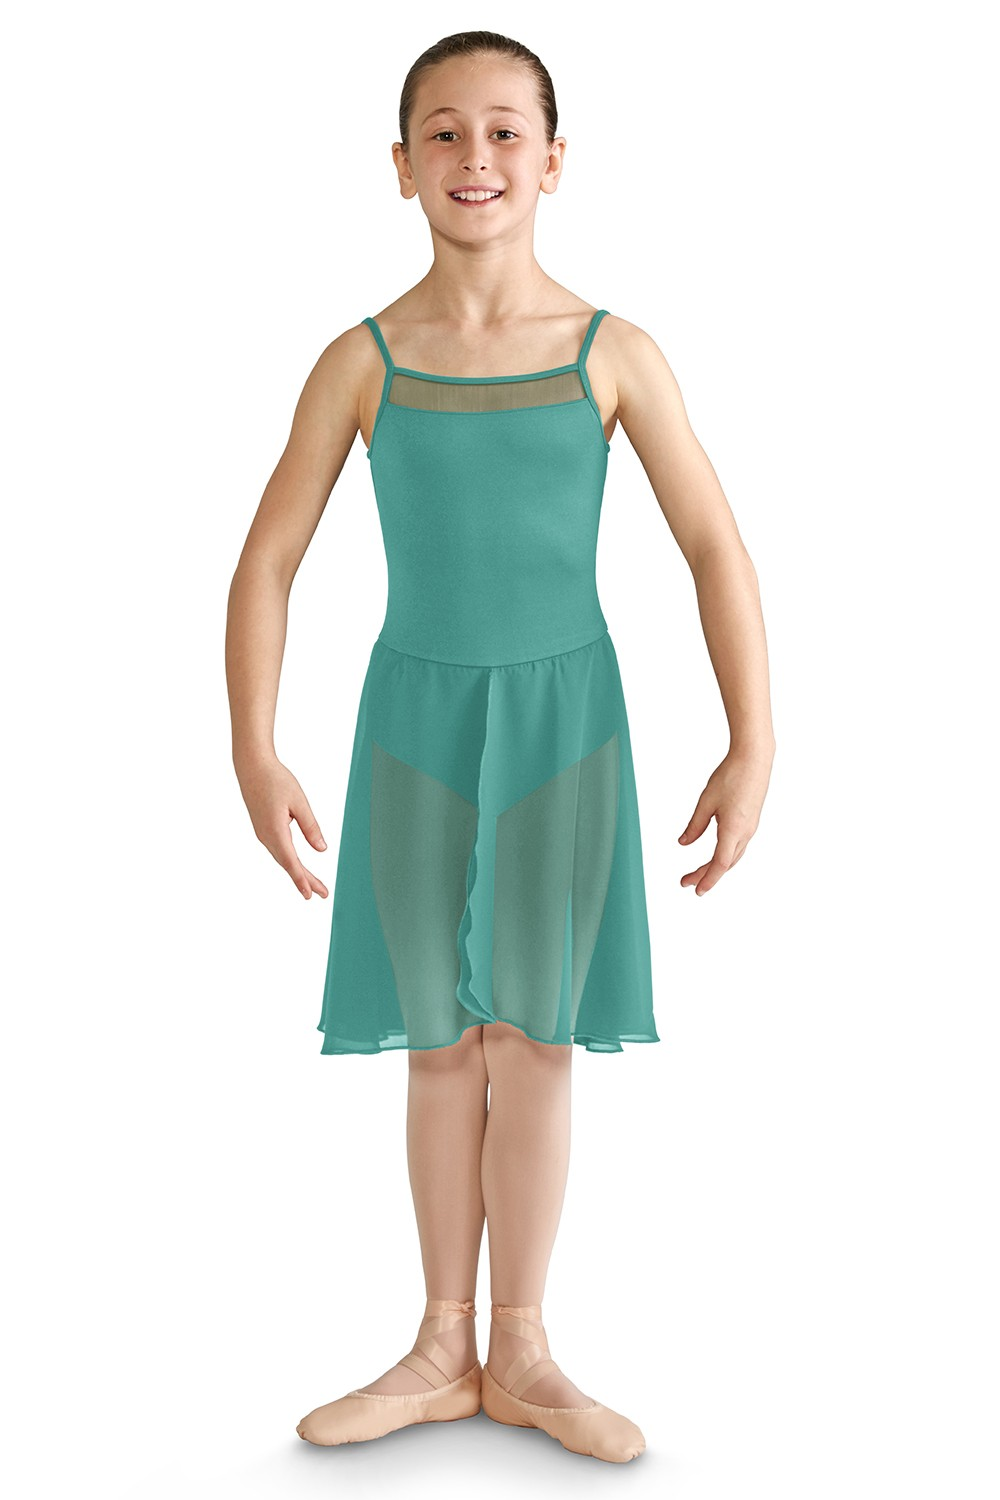 Skirted Camisole Girls Skirted Leotards